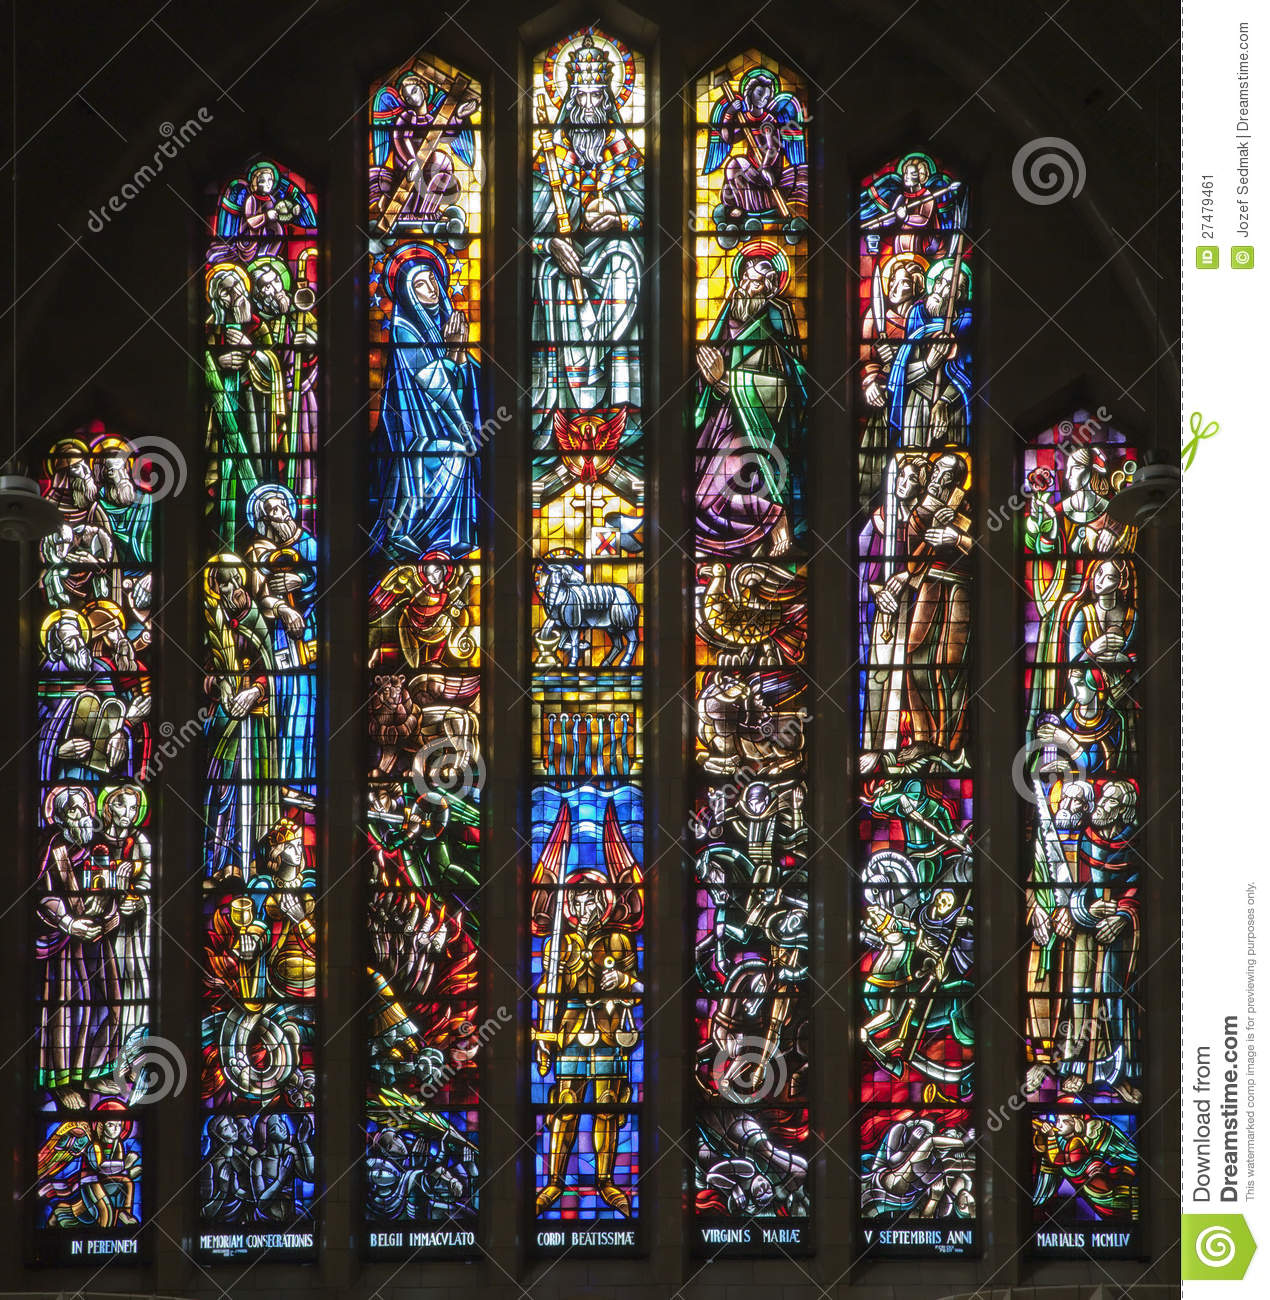 Download Brussels - Windowpane From Chorus Of Basilica Stock Image - Image of architecture, saint: 27479461